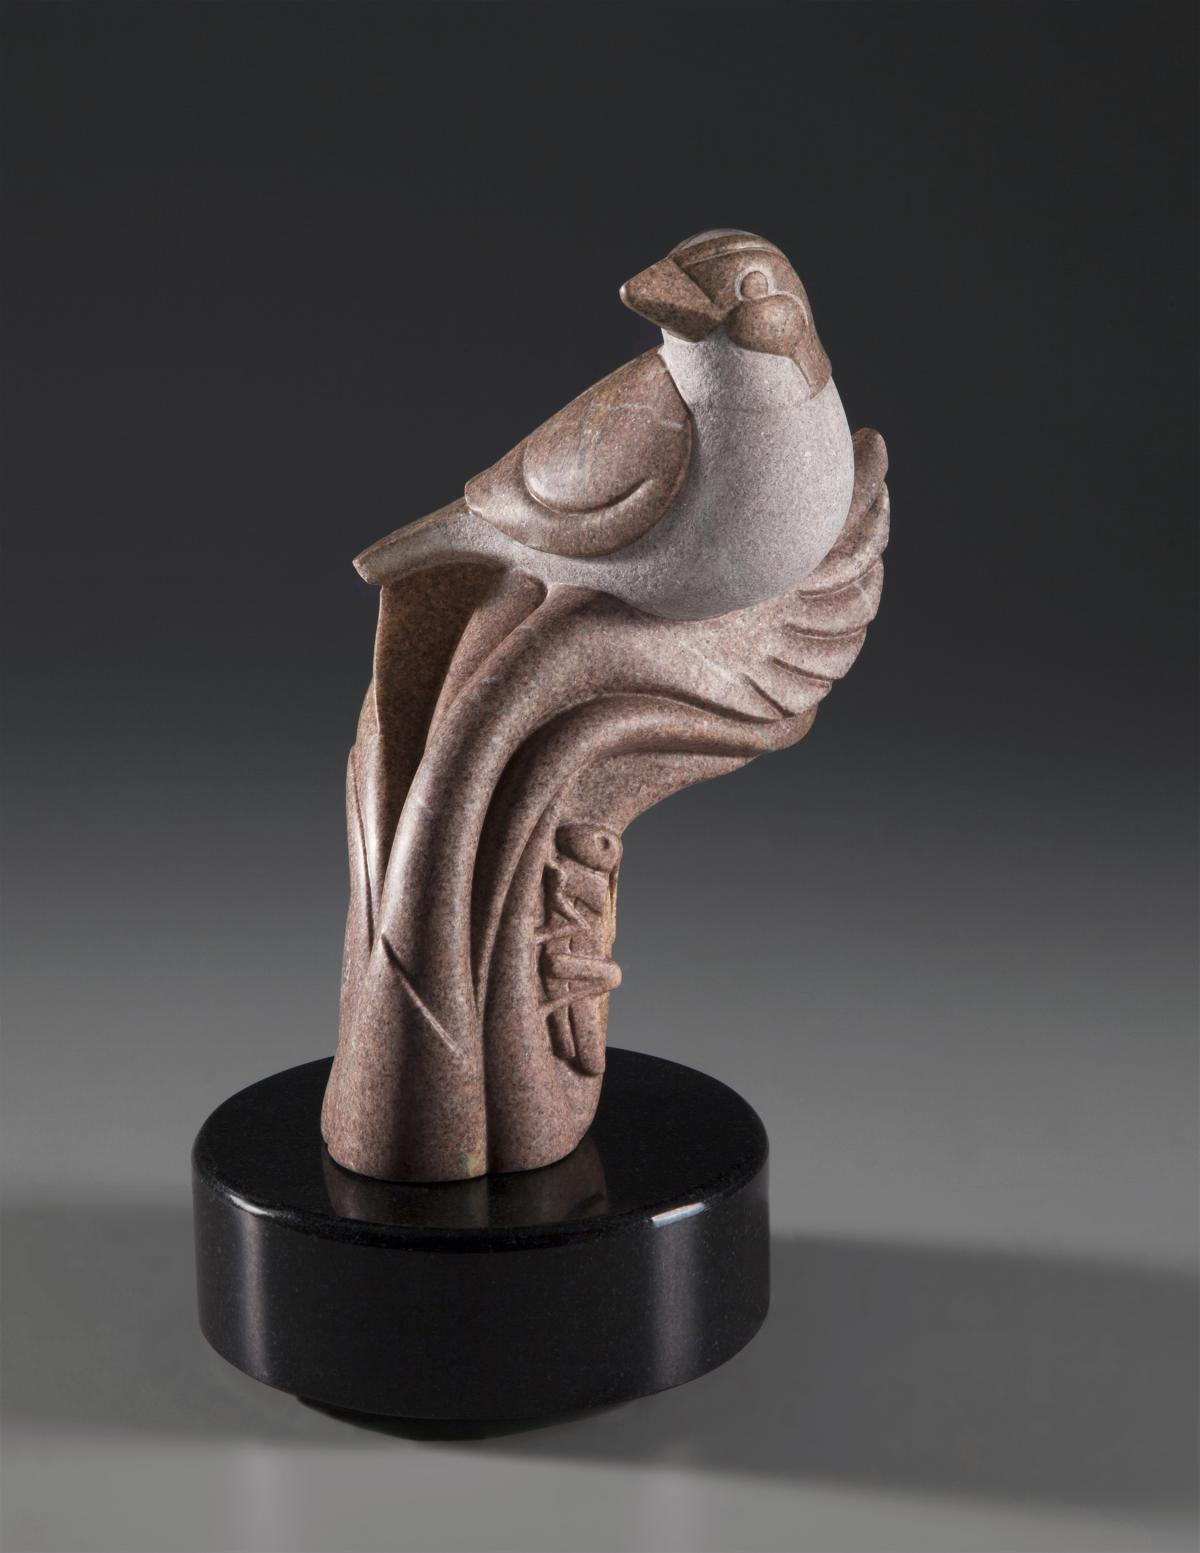 Tiny Sparrow, Huge Deal | Sculpture by Ellen Woodbury | Artists for Conservation 2018